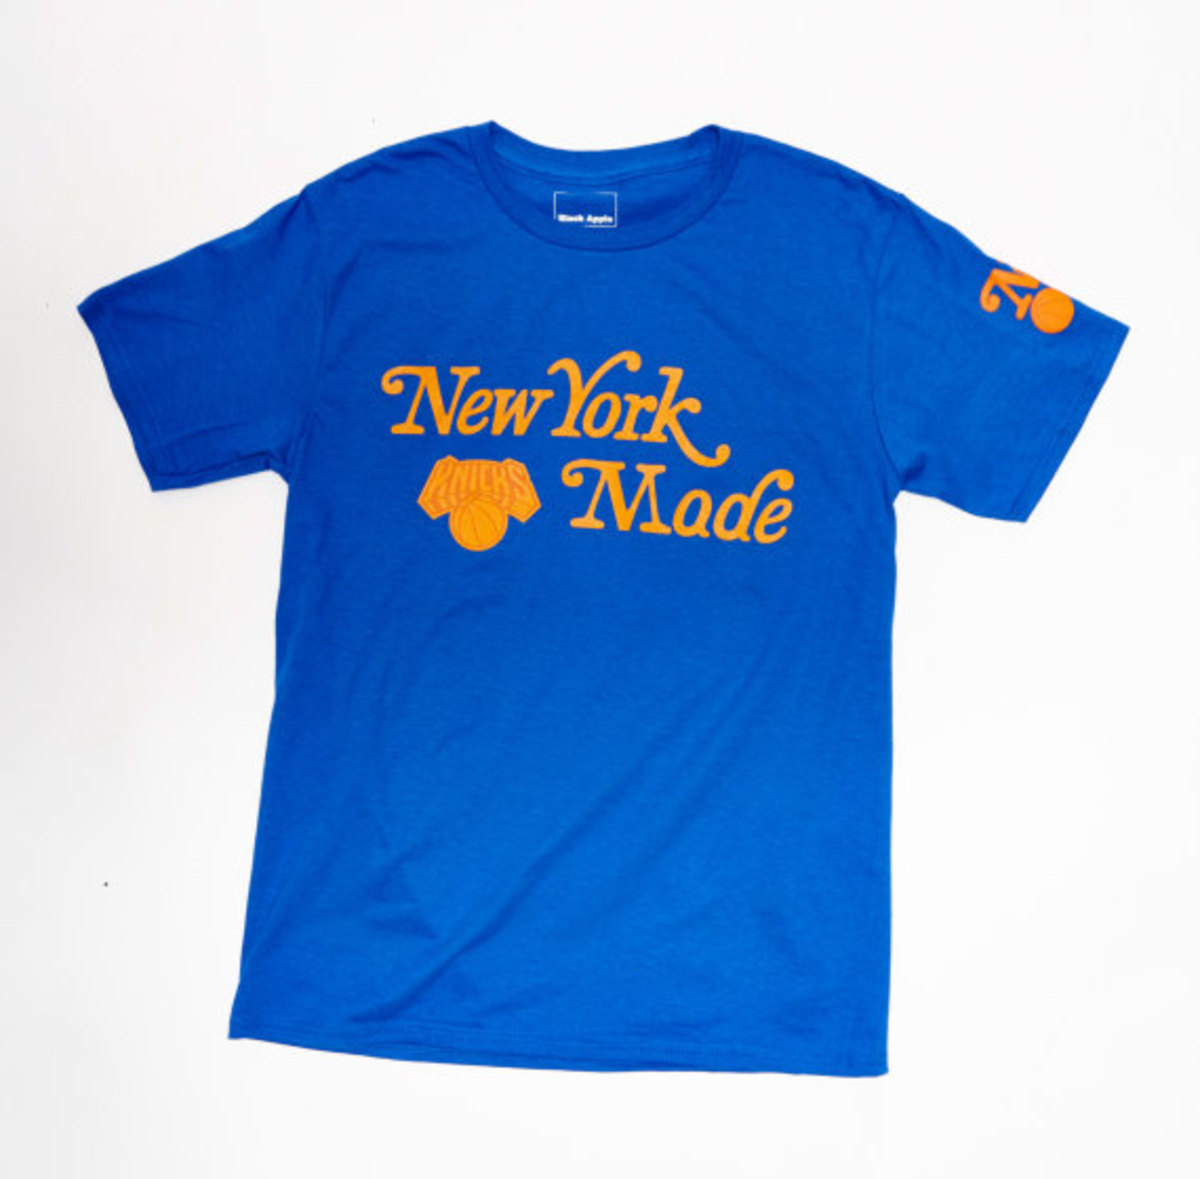 Public School: Black Apple x New York Knicks - Fall/Winter 2014 Capsule Collection - 9